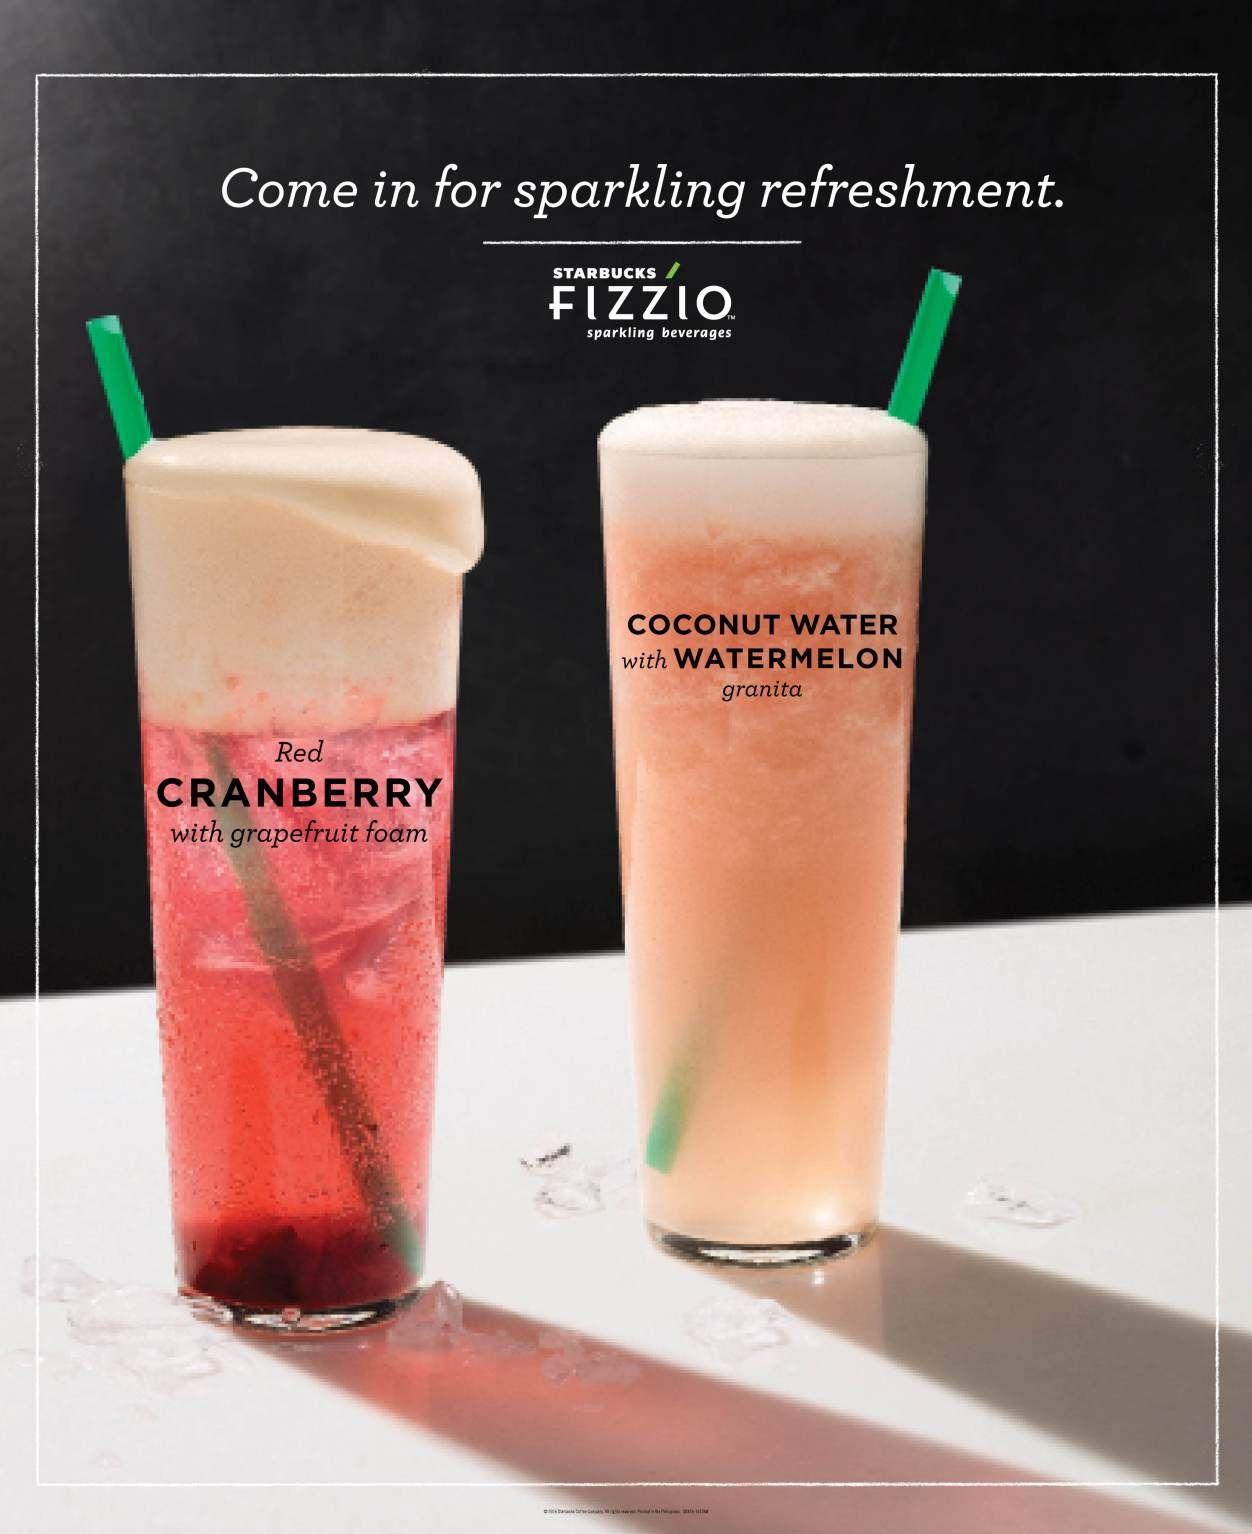 What's new this summer at Starbucks Philippines? The new Fizzio Sparkling…